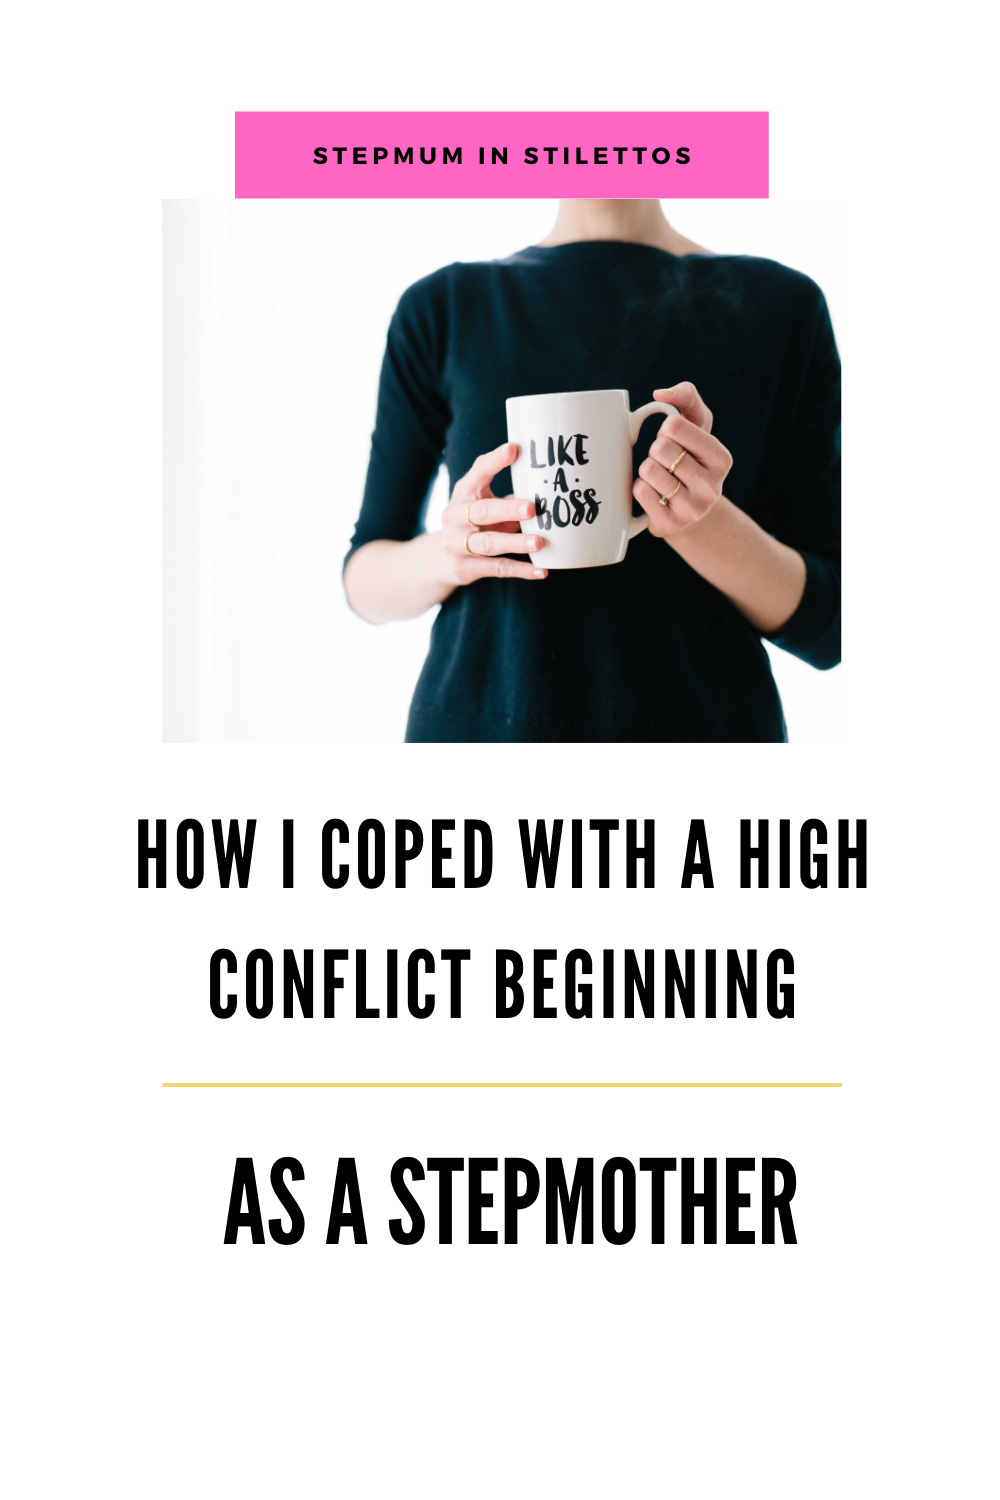 How I coped with a high conflict beginning as a stepmother